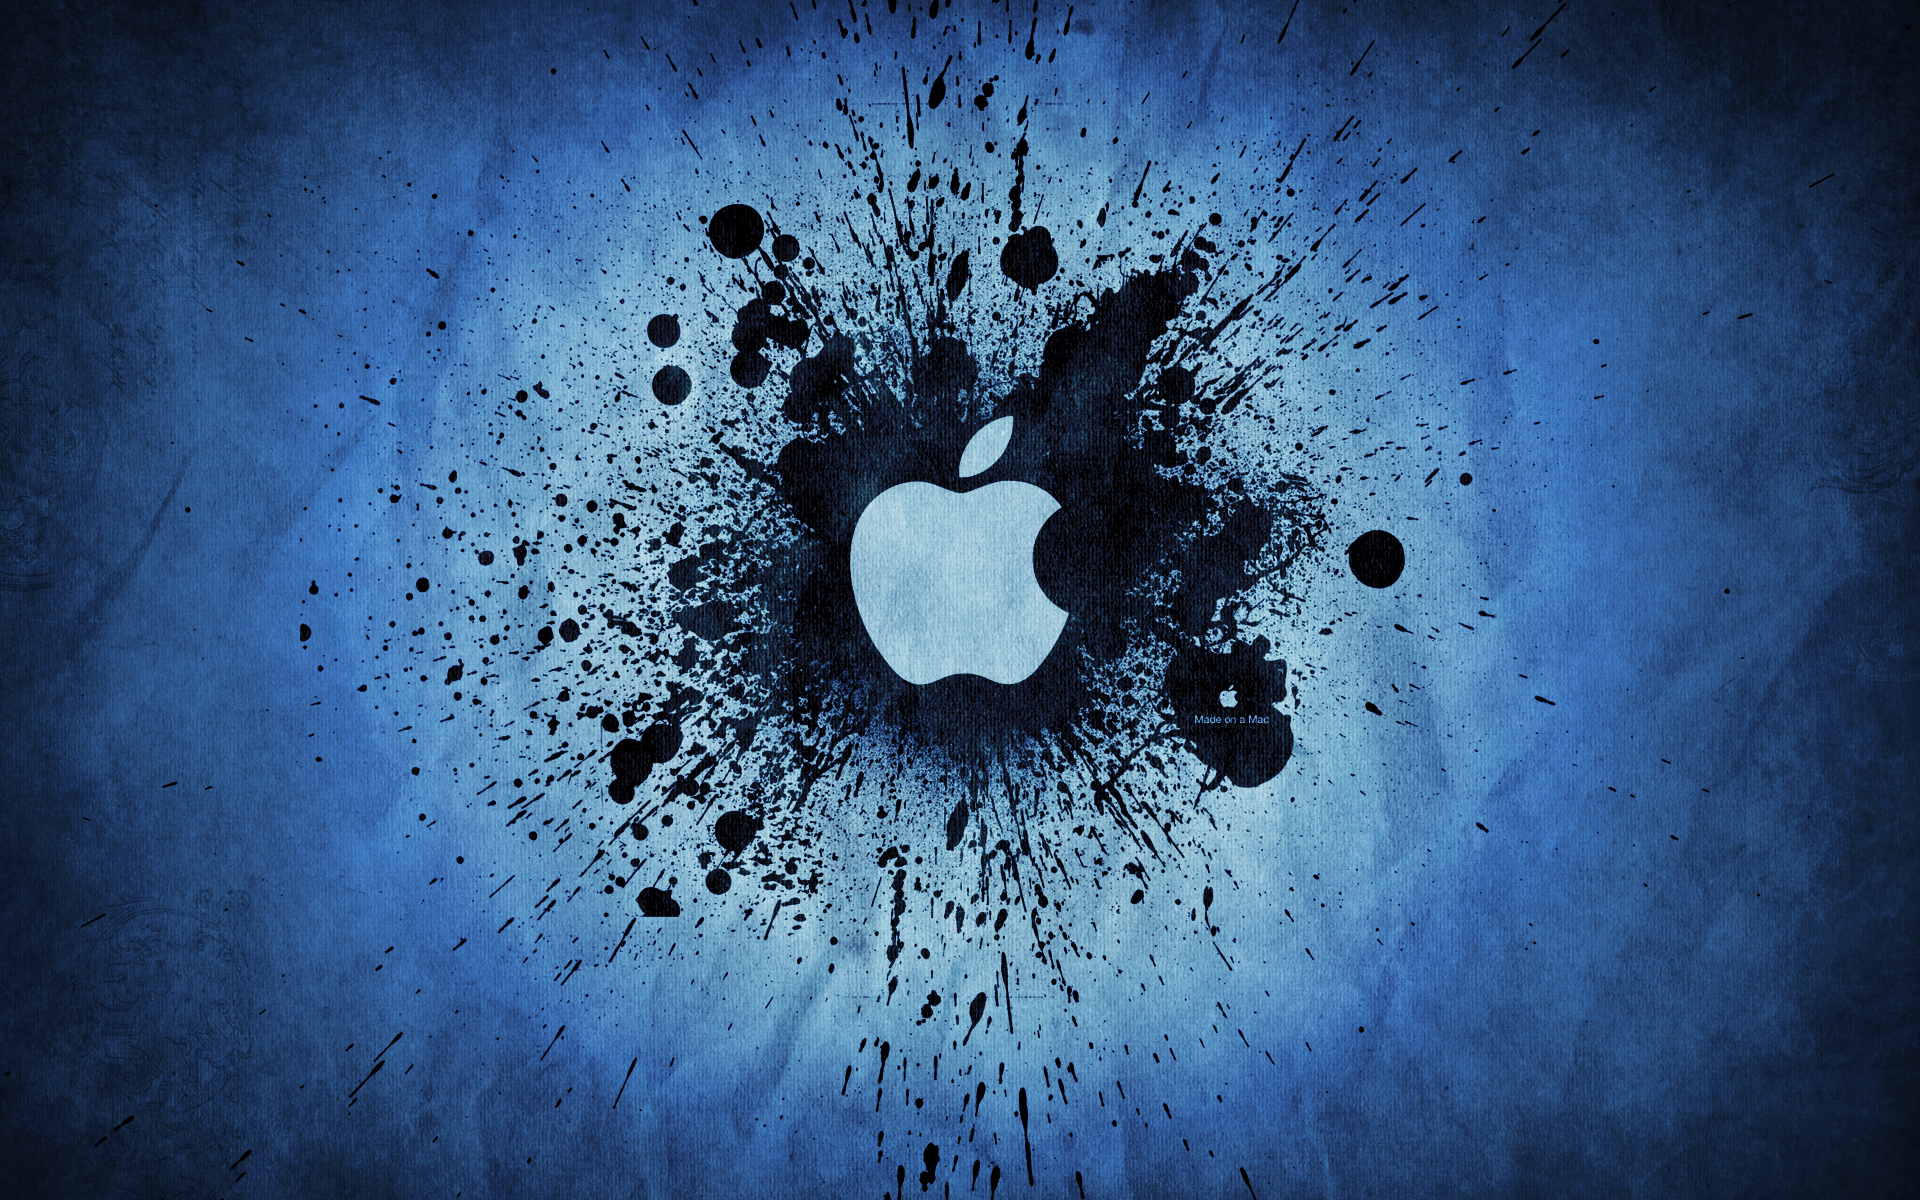 Apple Backgrounds Best Good For Mac 151 Wallpaper